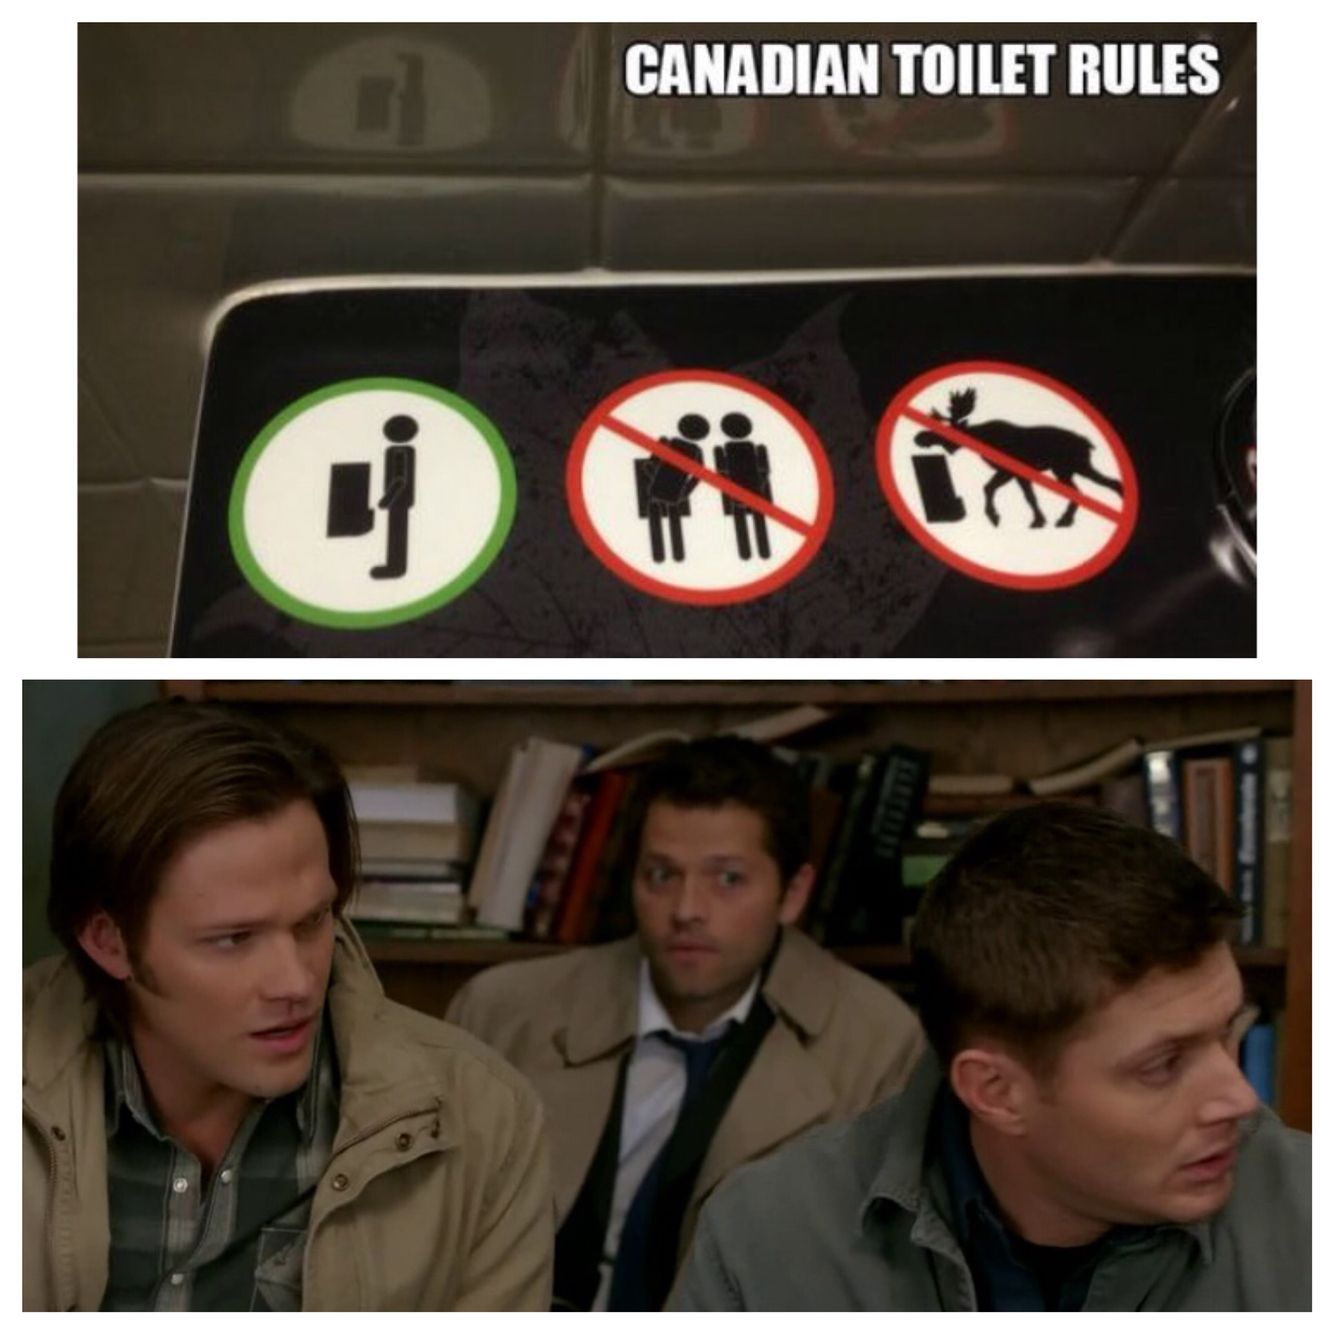 Apparently only Dean is permitted in Canadian restrooms.